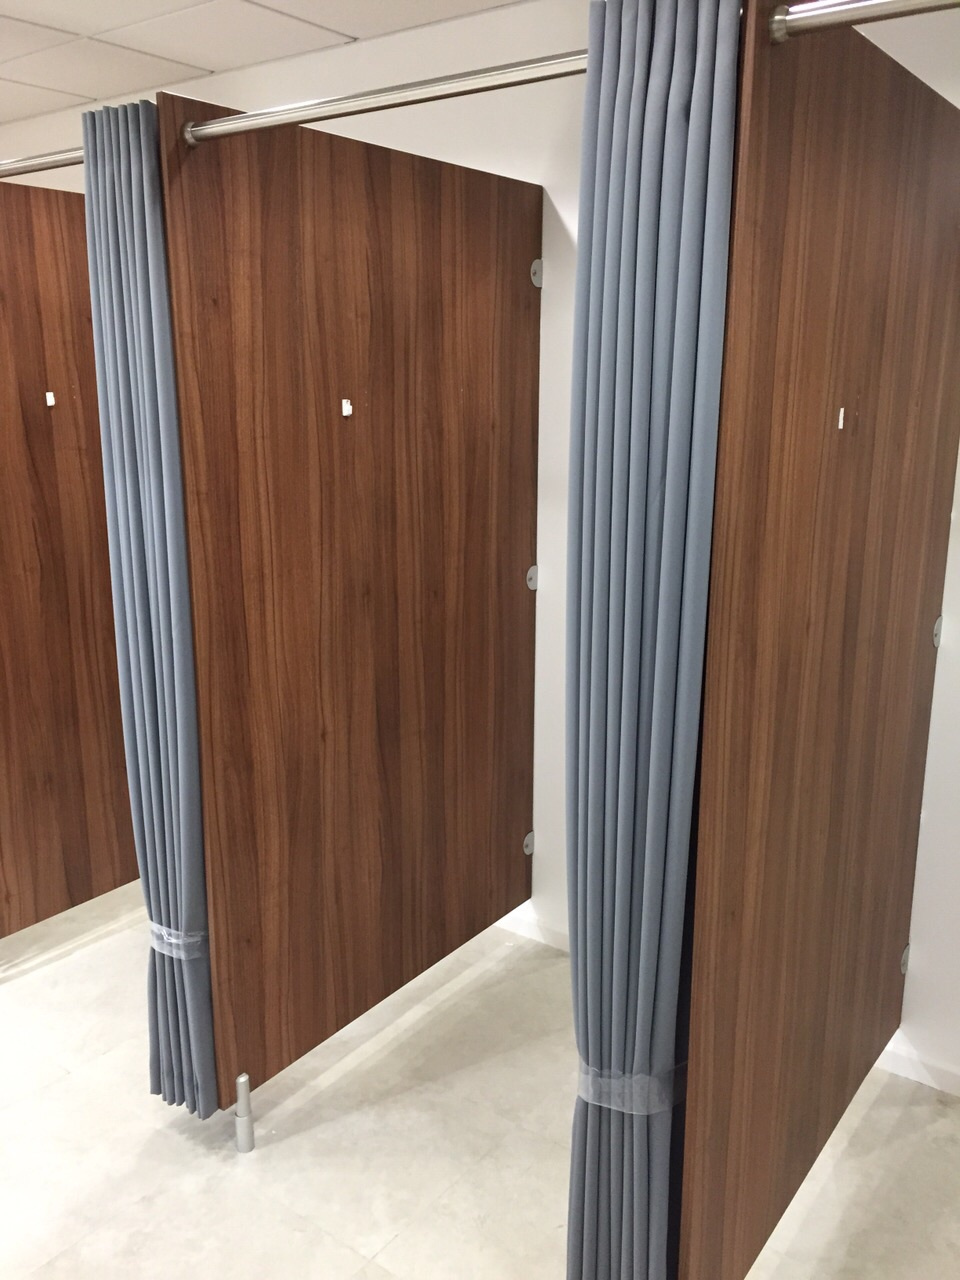 Shop Fitting Room Cubicle Curtains For Pep Amp Co Stores In